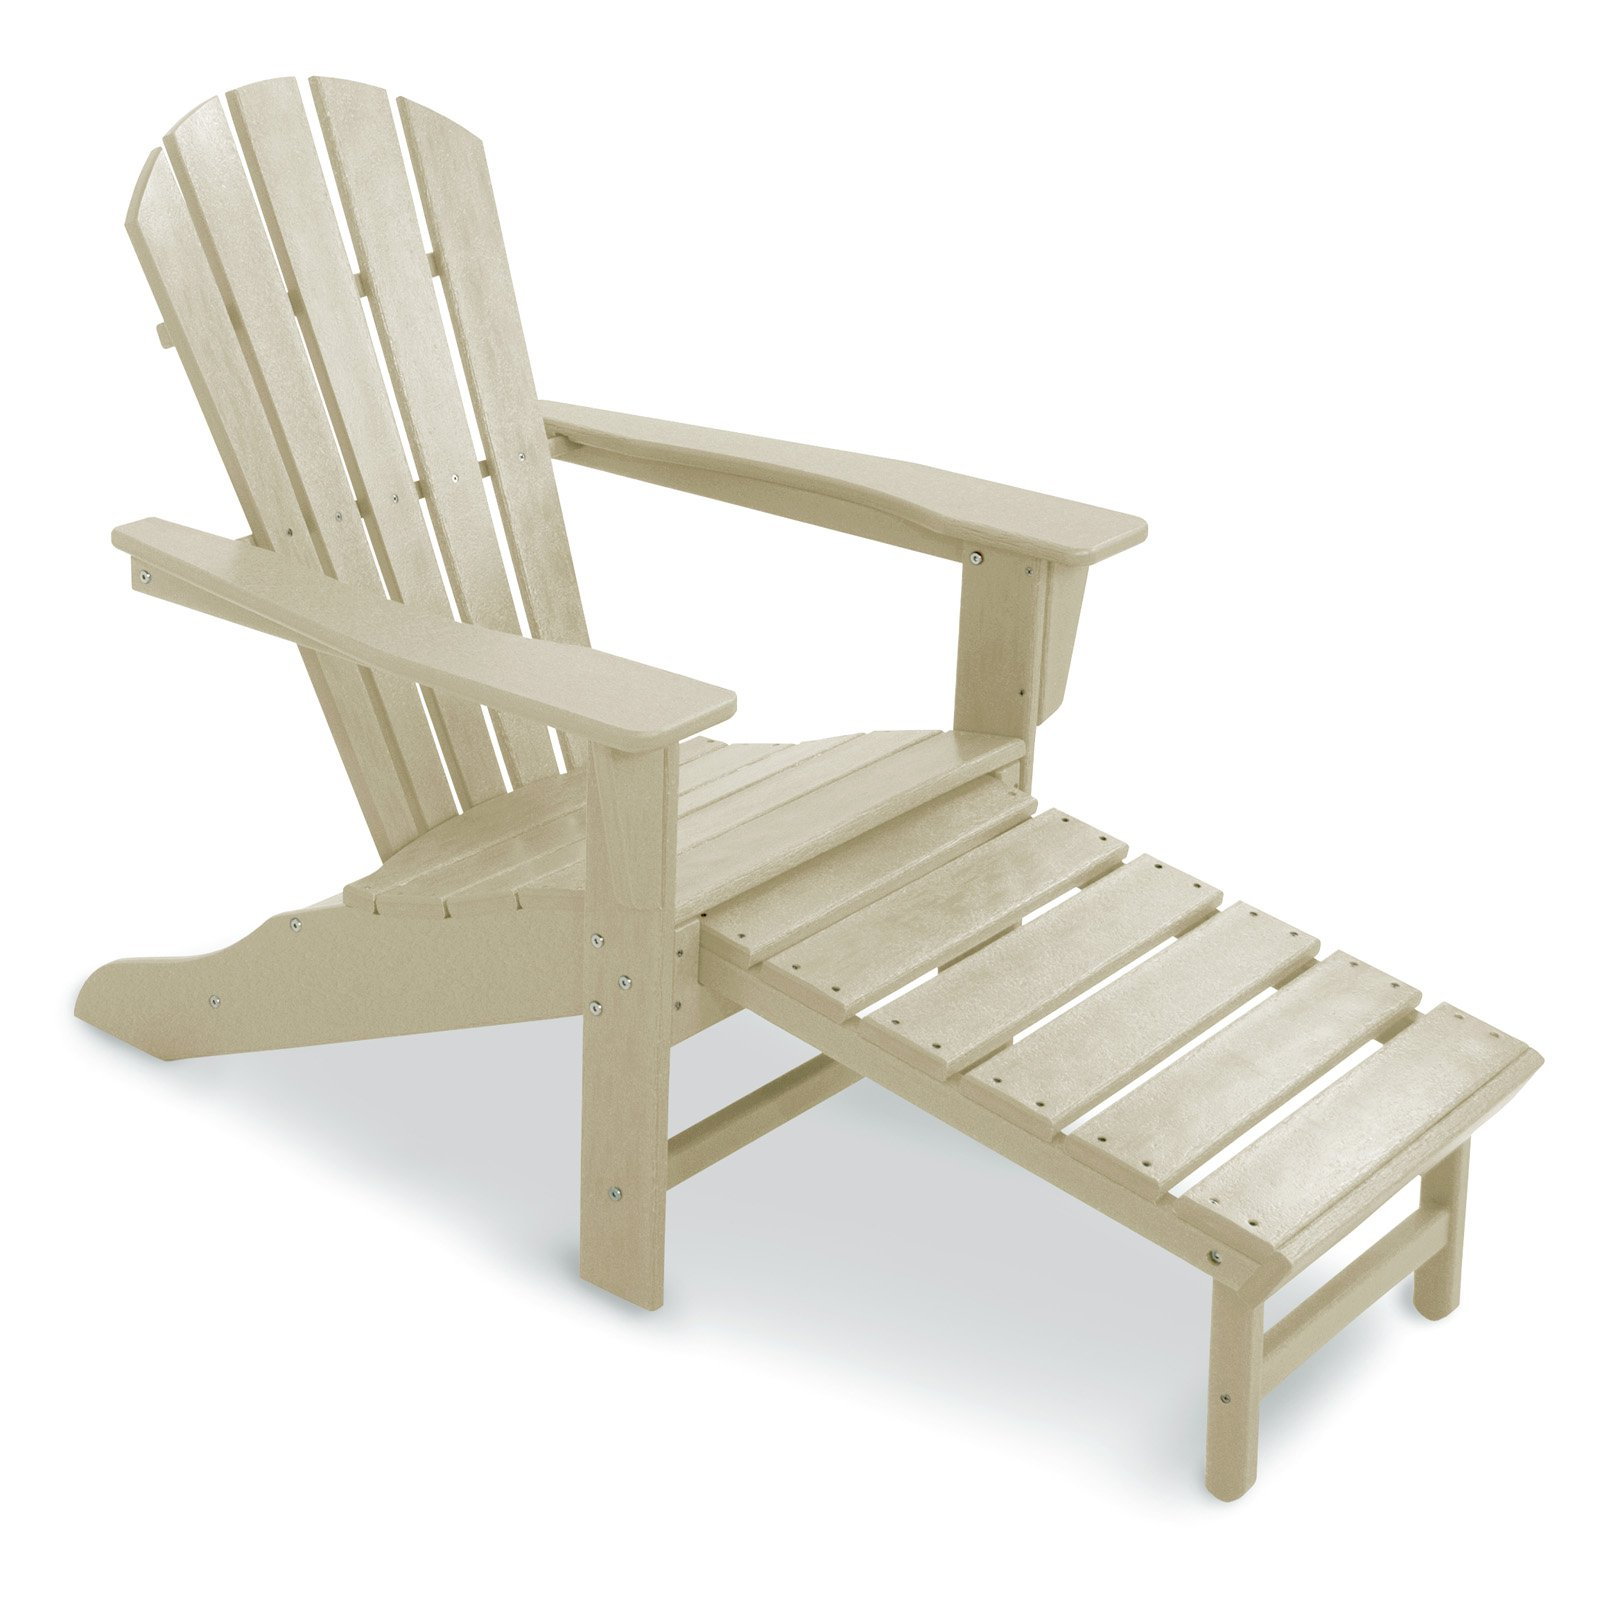 POLYWOOD® Recycled Plastic Big Daddy Adirondack Chair with Pull-out Ottoman